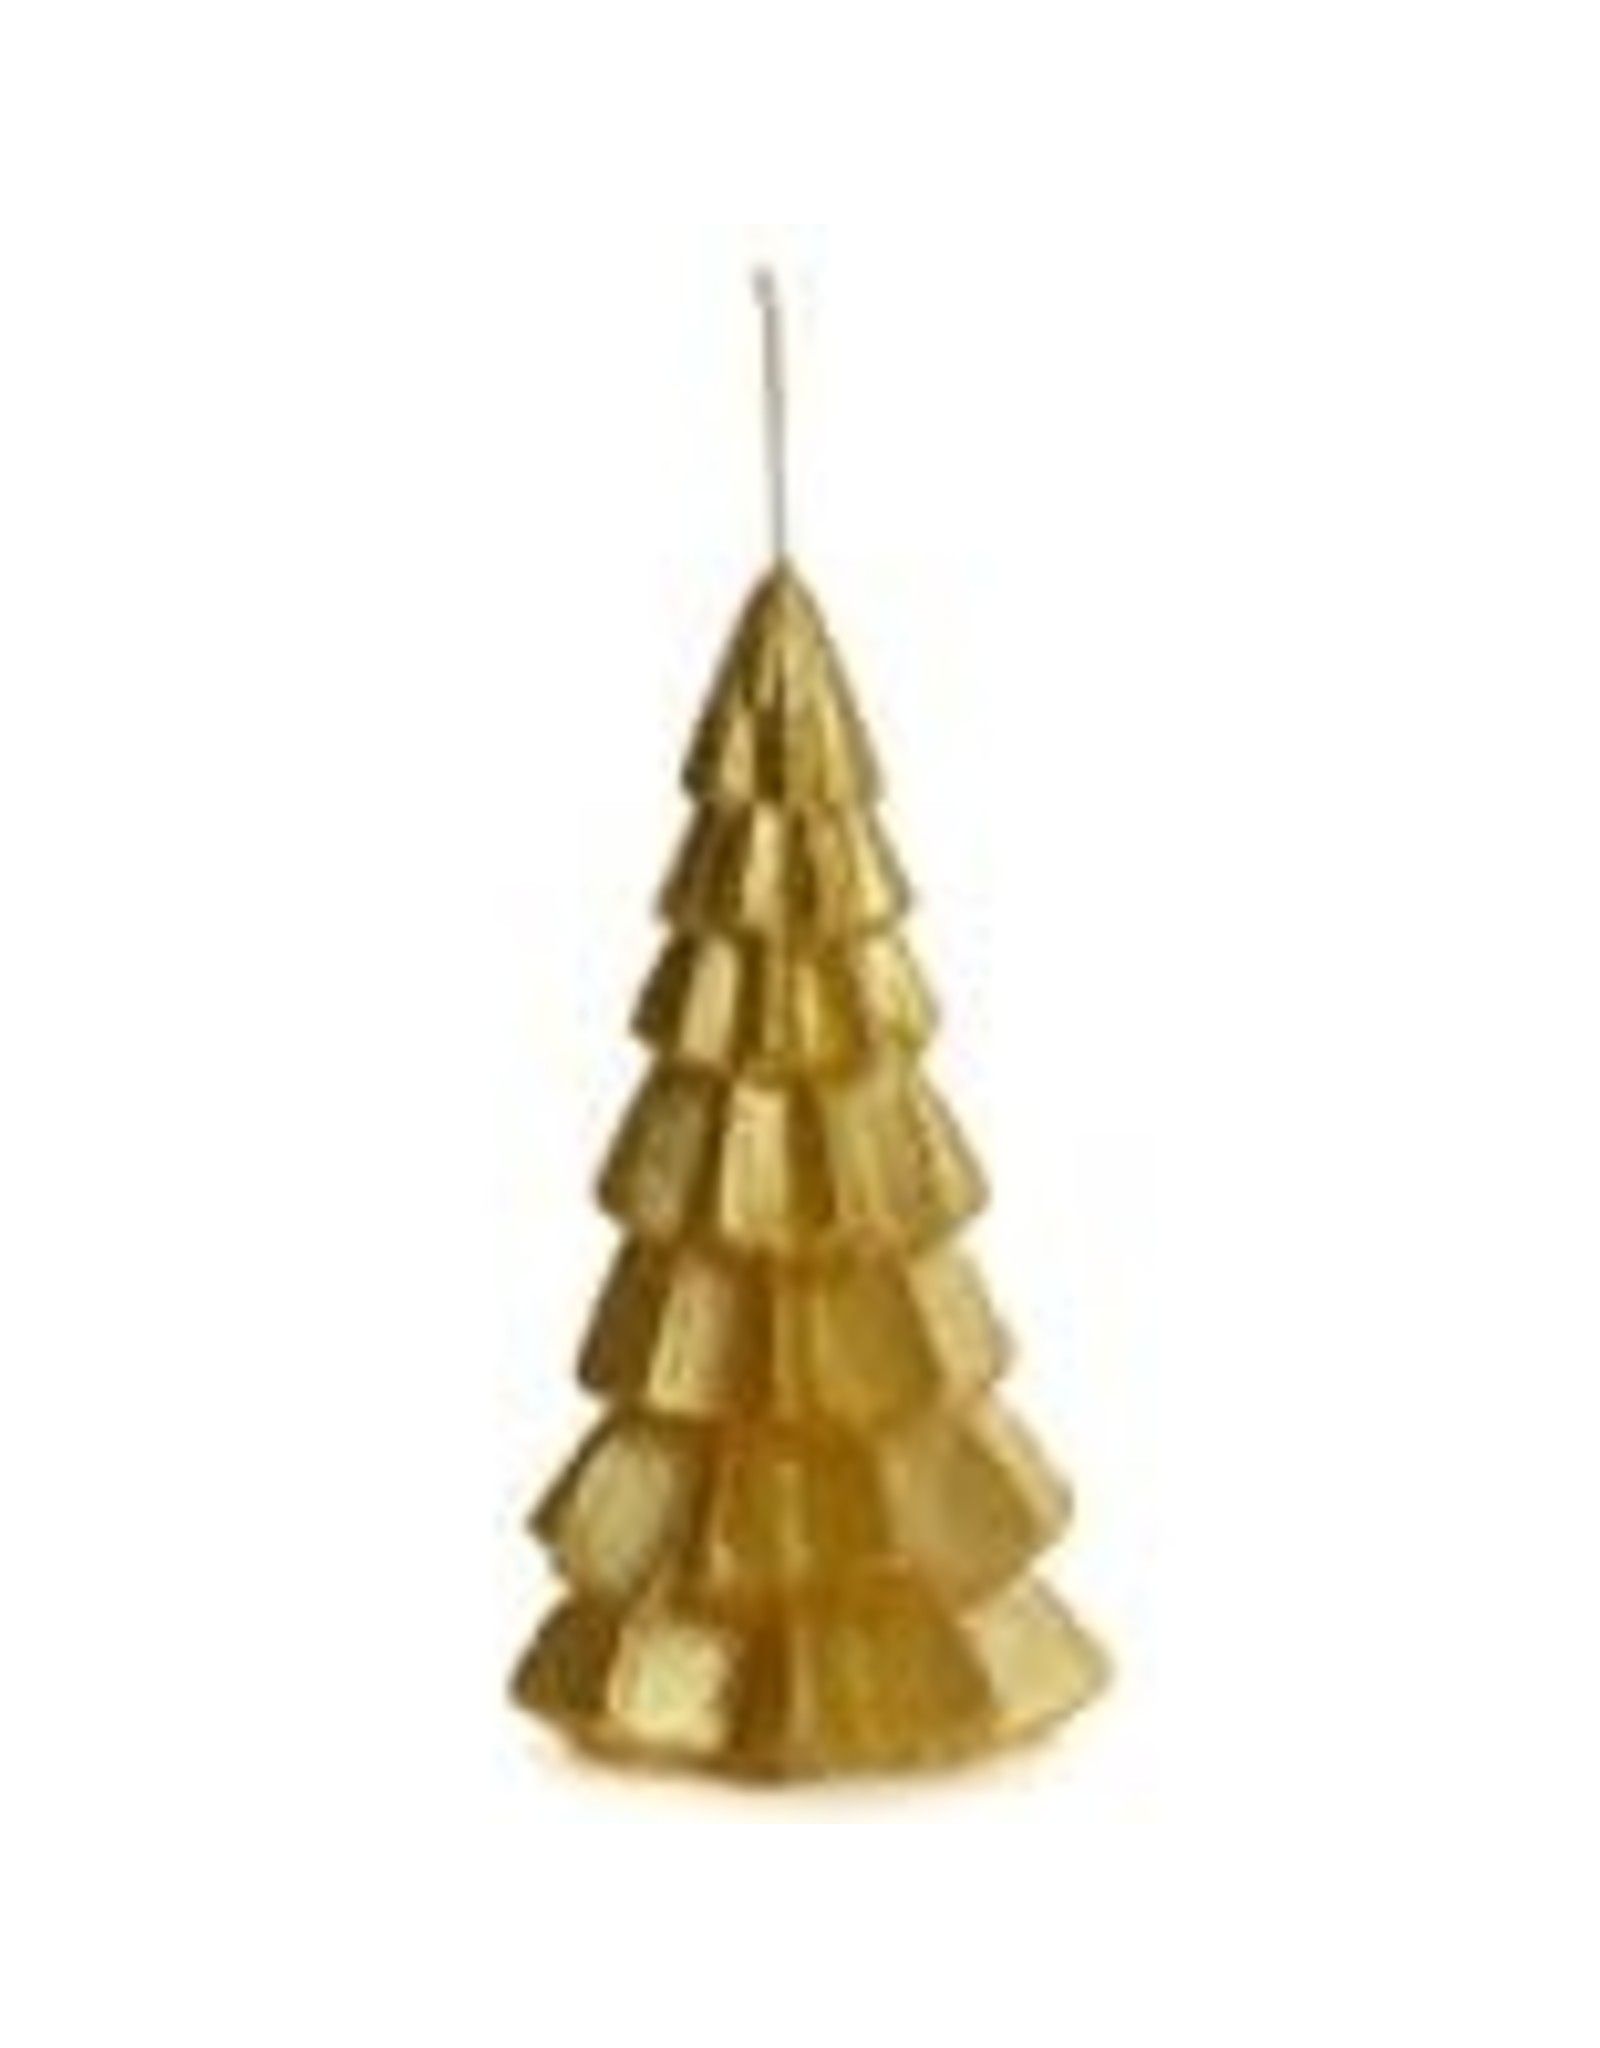 Rustik Lys Kaars - Kerstboom  - Small - Gold - 6,3 x 12 cm - Burning time +/- 13h